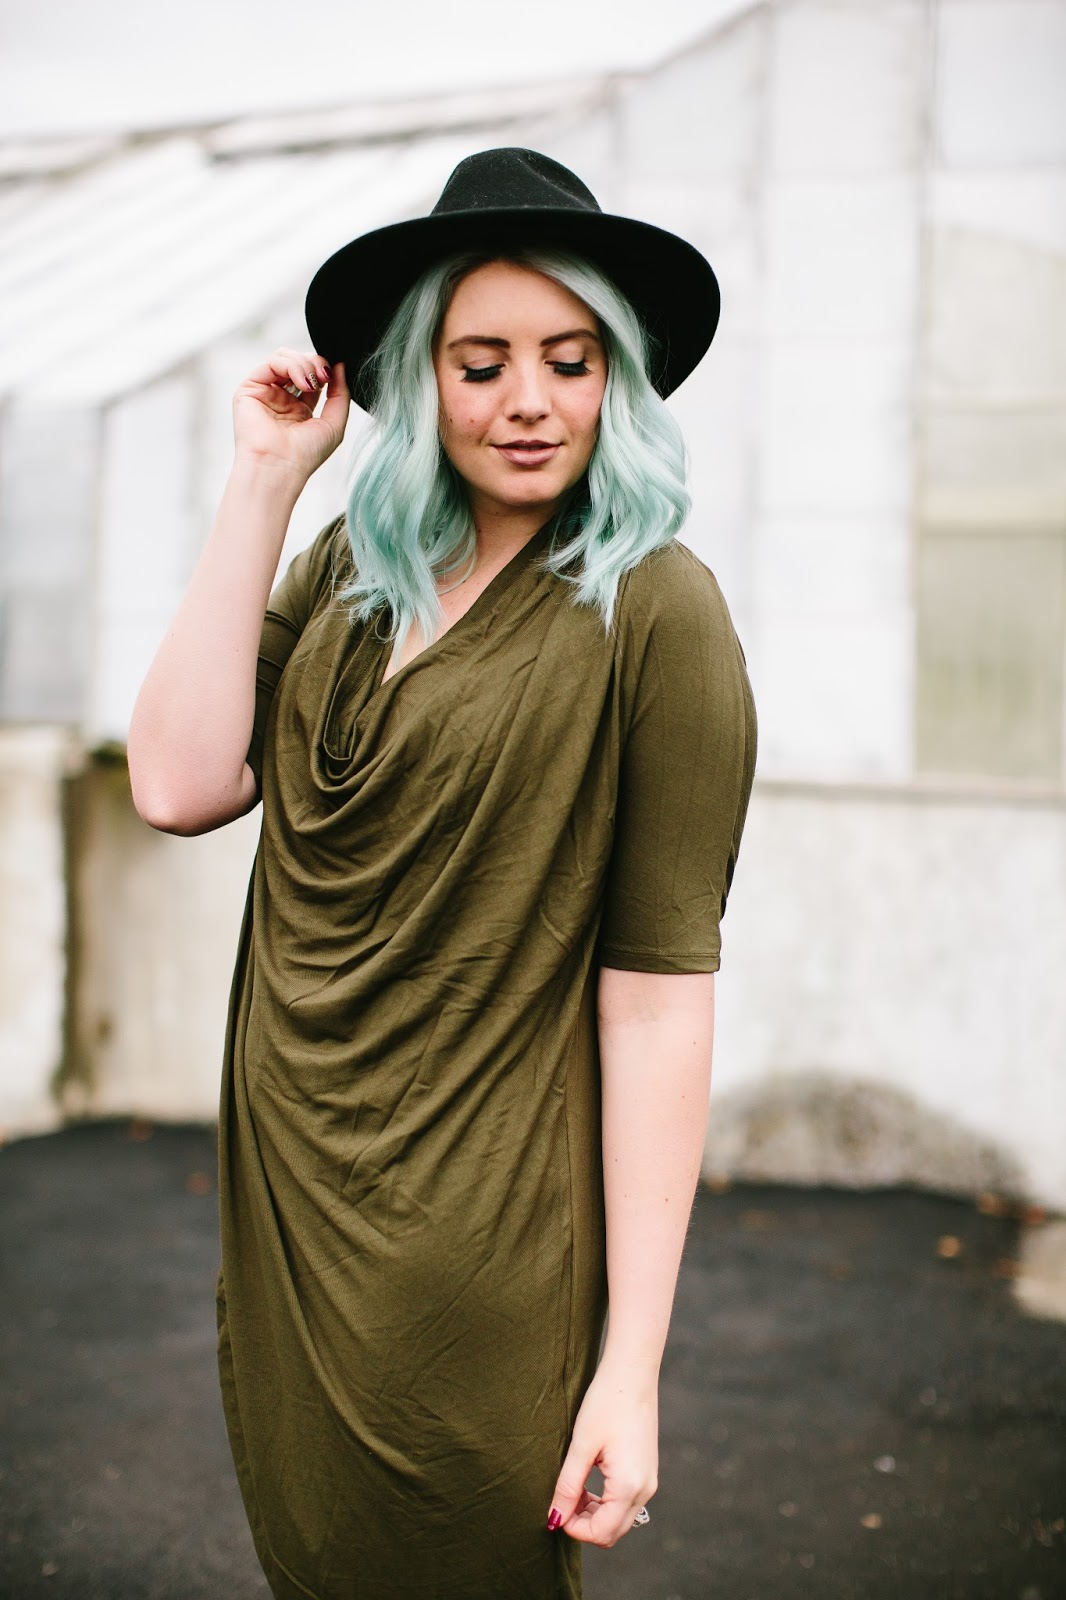 Draped Dress, Utah Fashion Blogger, Modesty